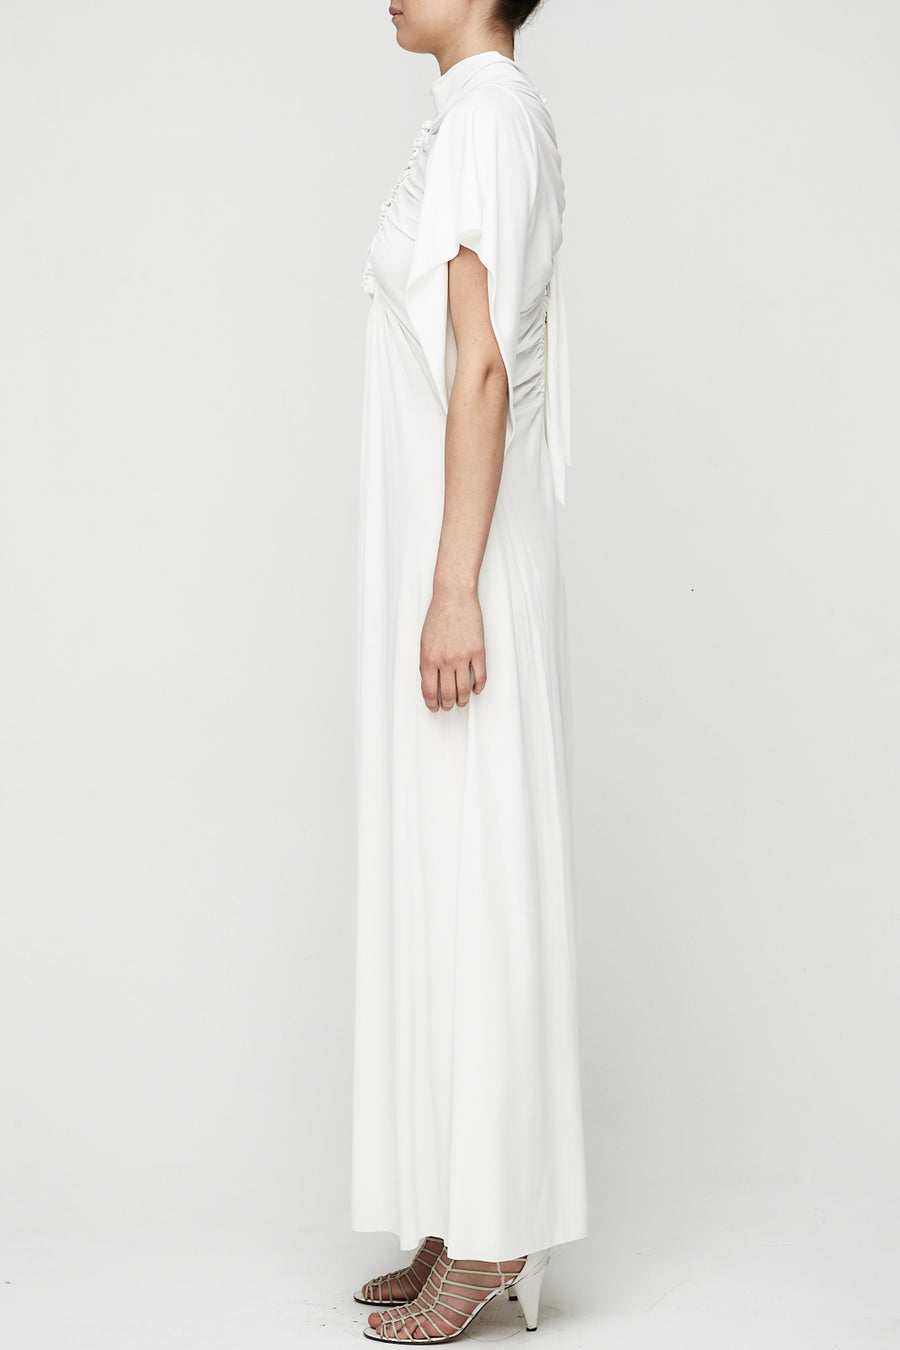 Earth Angel Gown - White